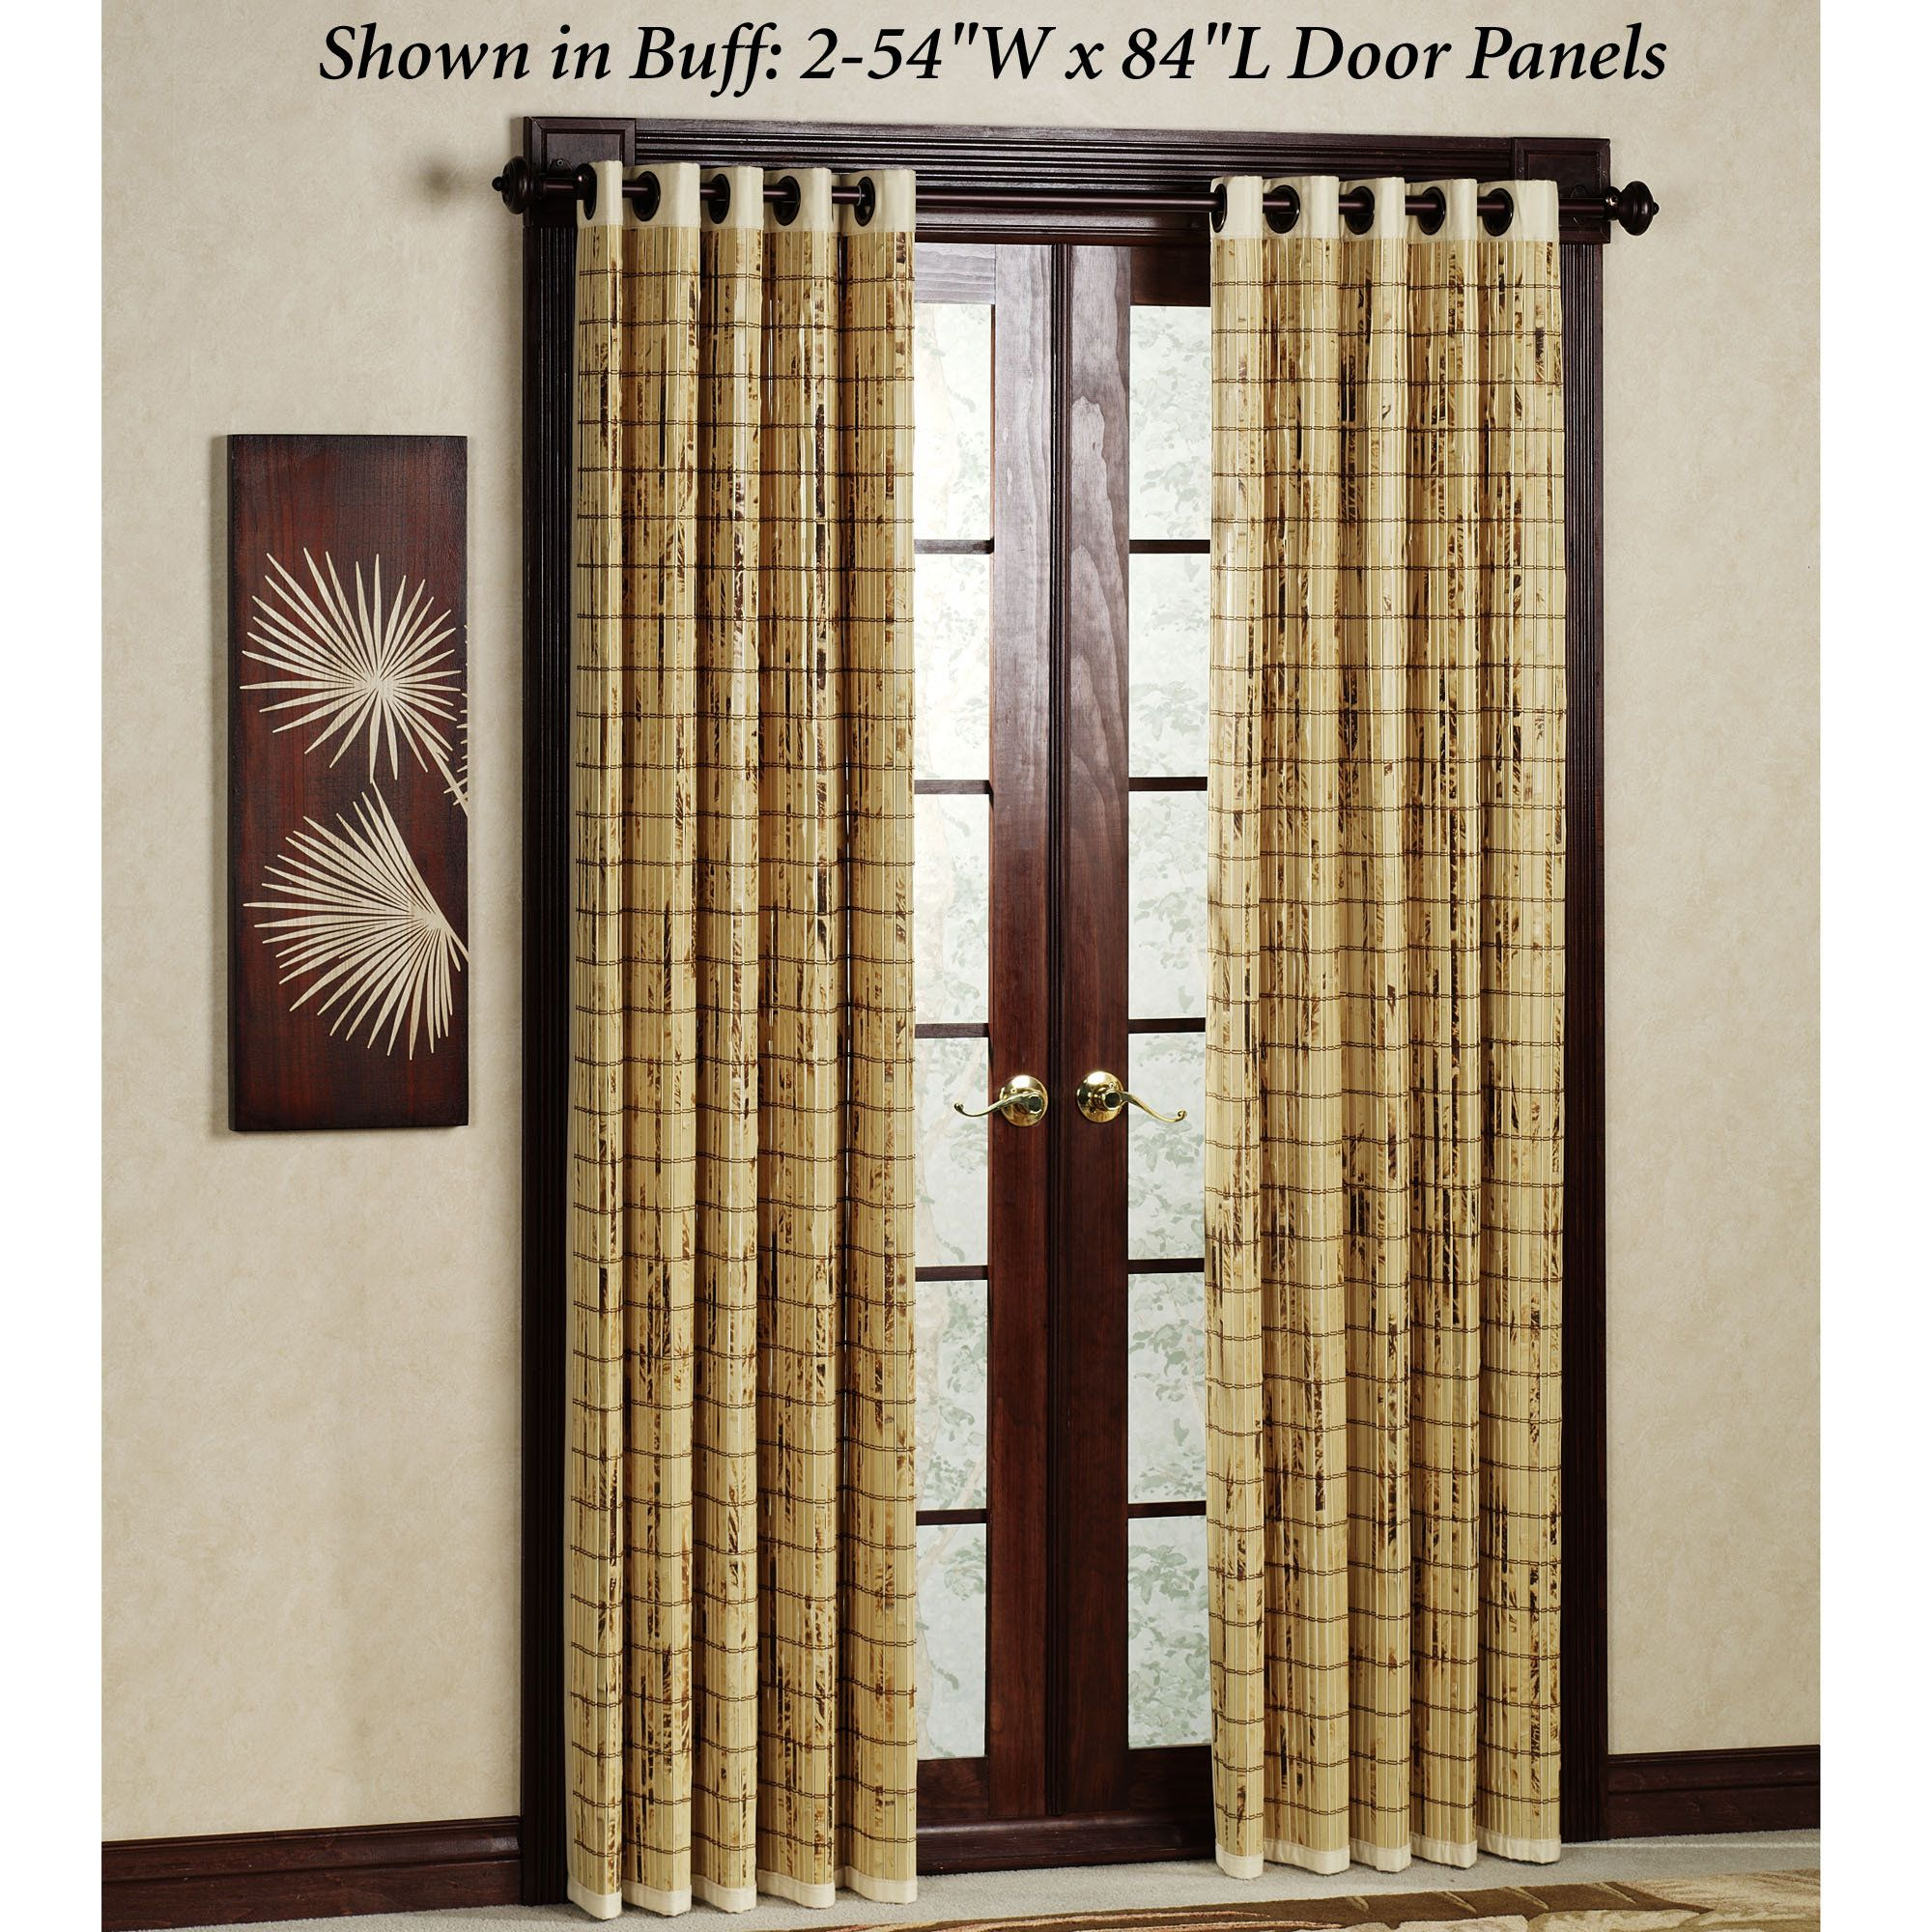 Bamboo door panel 54 x 84 palm springs remodel pinterest bamboo door panel 54 x 84 door panel curtainspatio planetlyrics